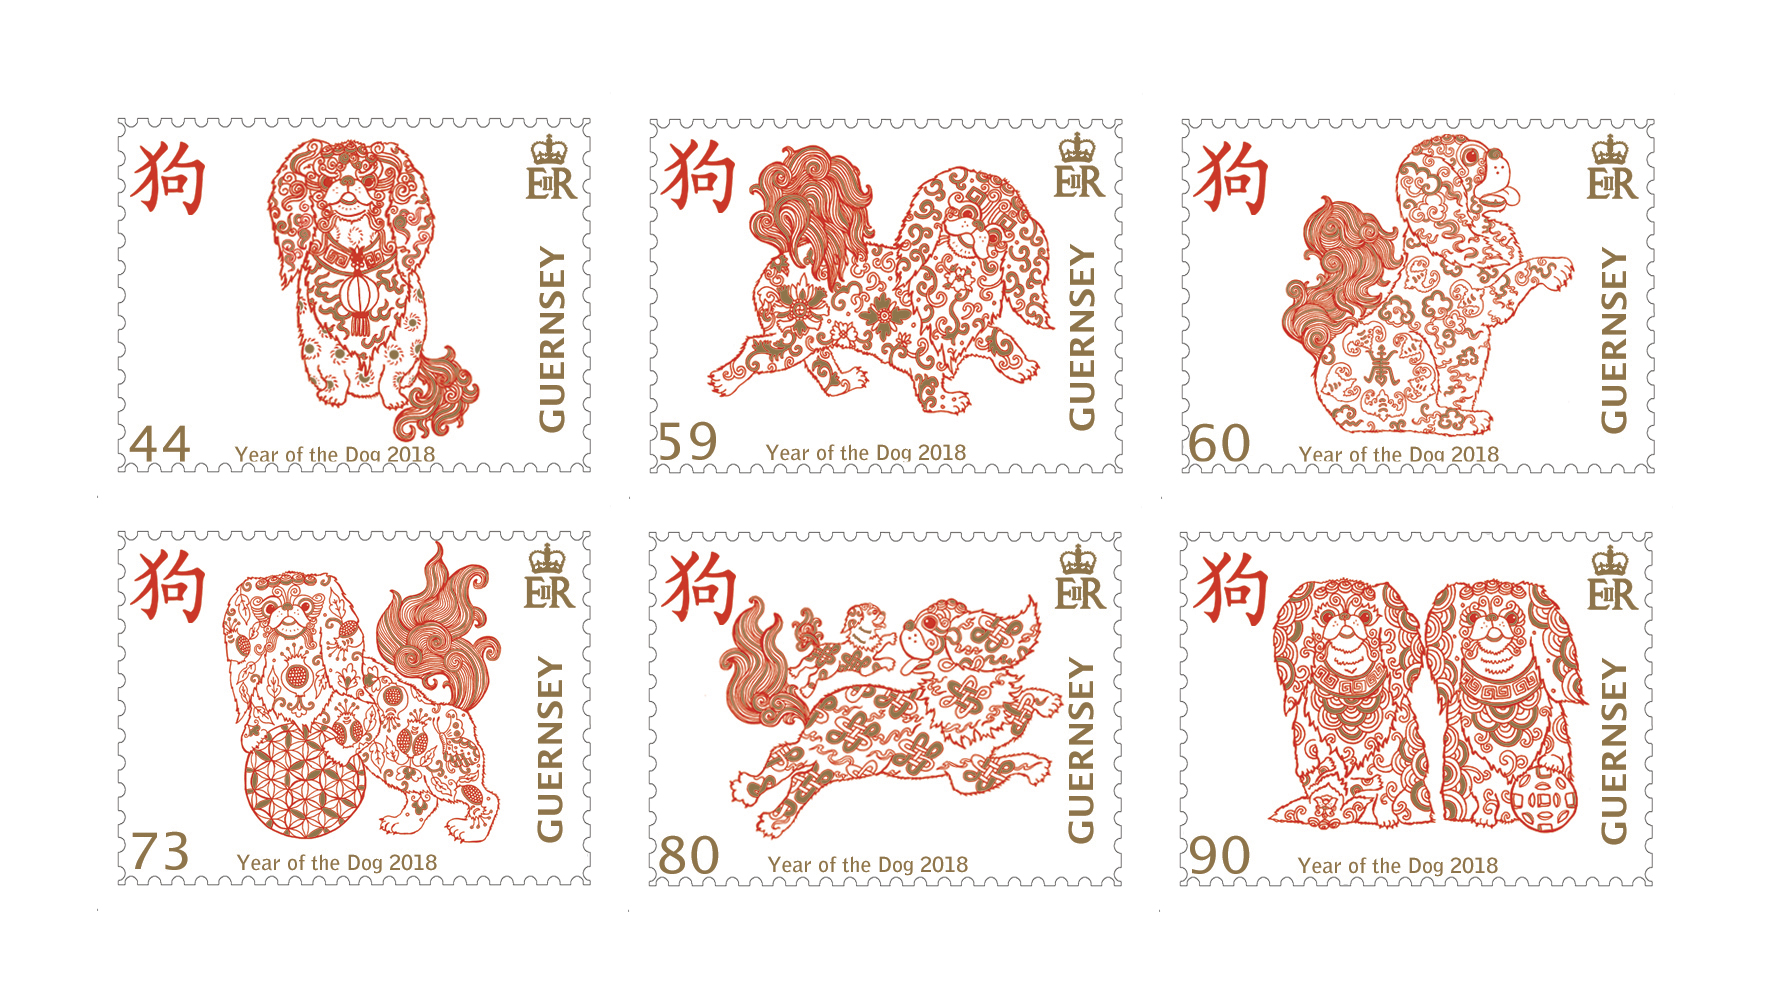 Guernsey Post celebrates Chines New Year with fifth stamp issue